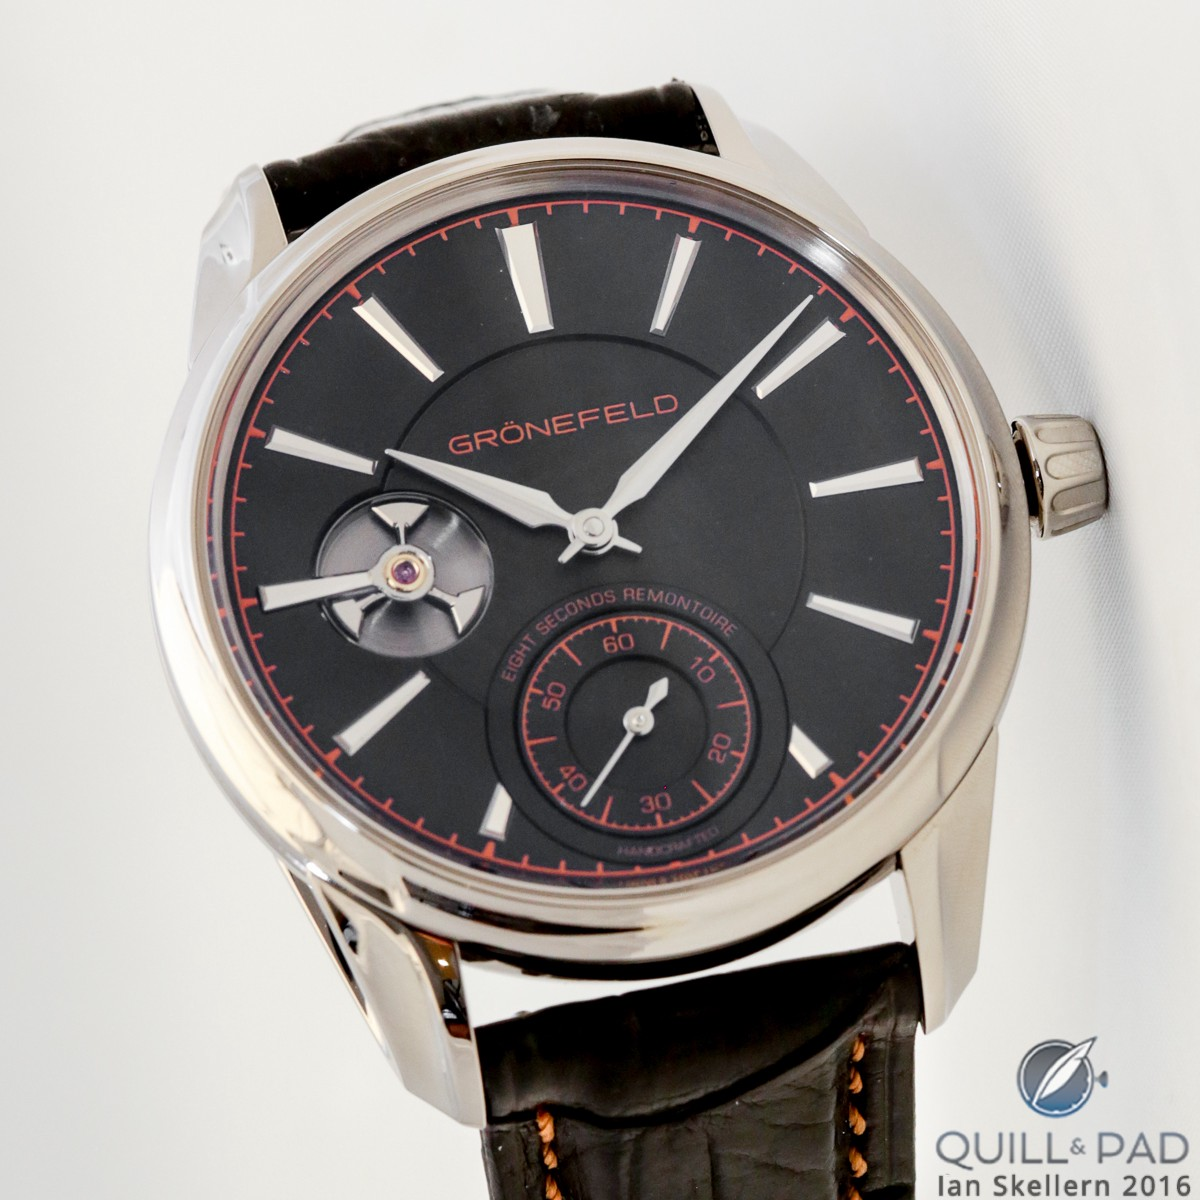 Gronefeld 1941 Remontoire in white gold with black solid silver dial